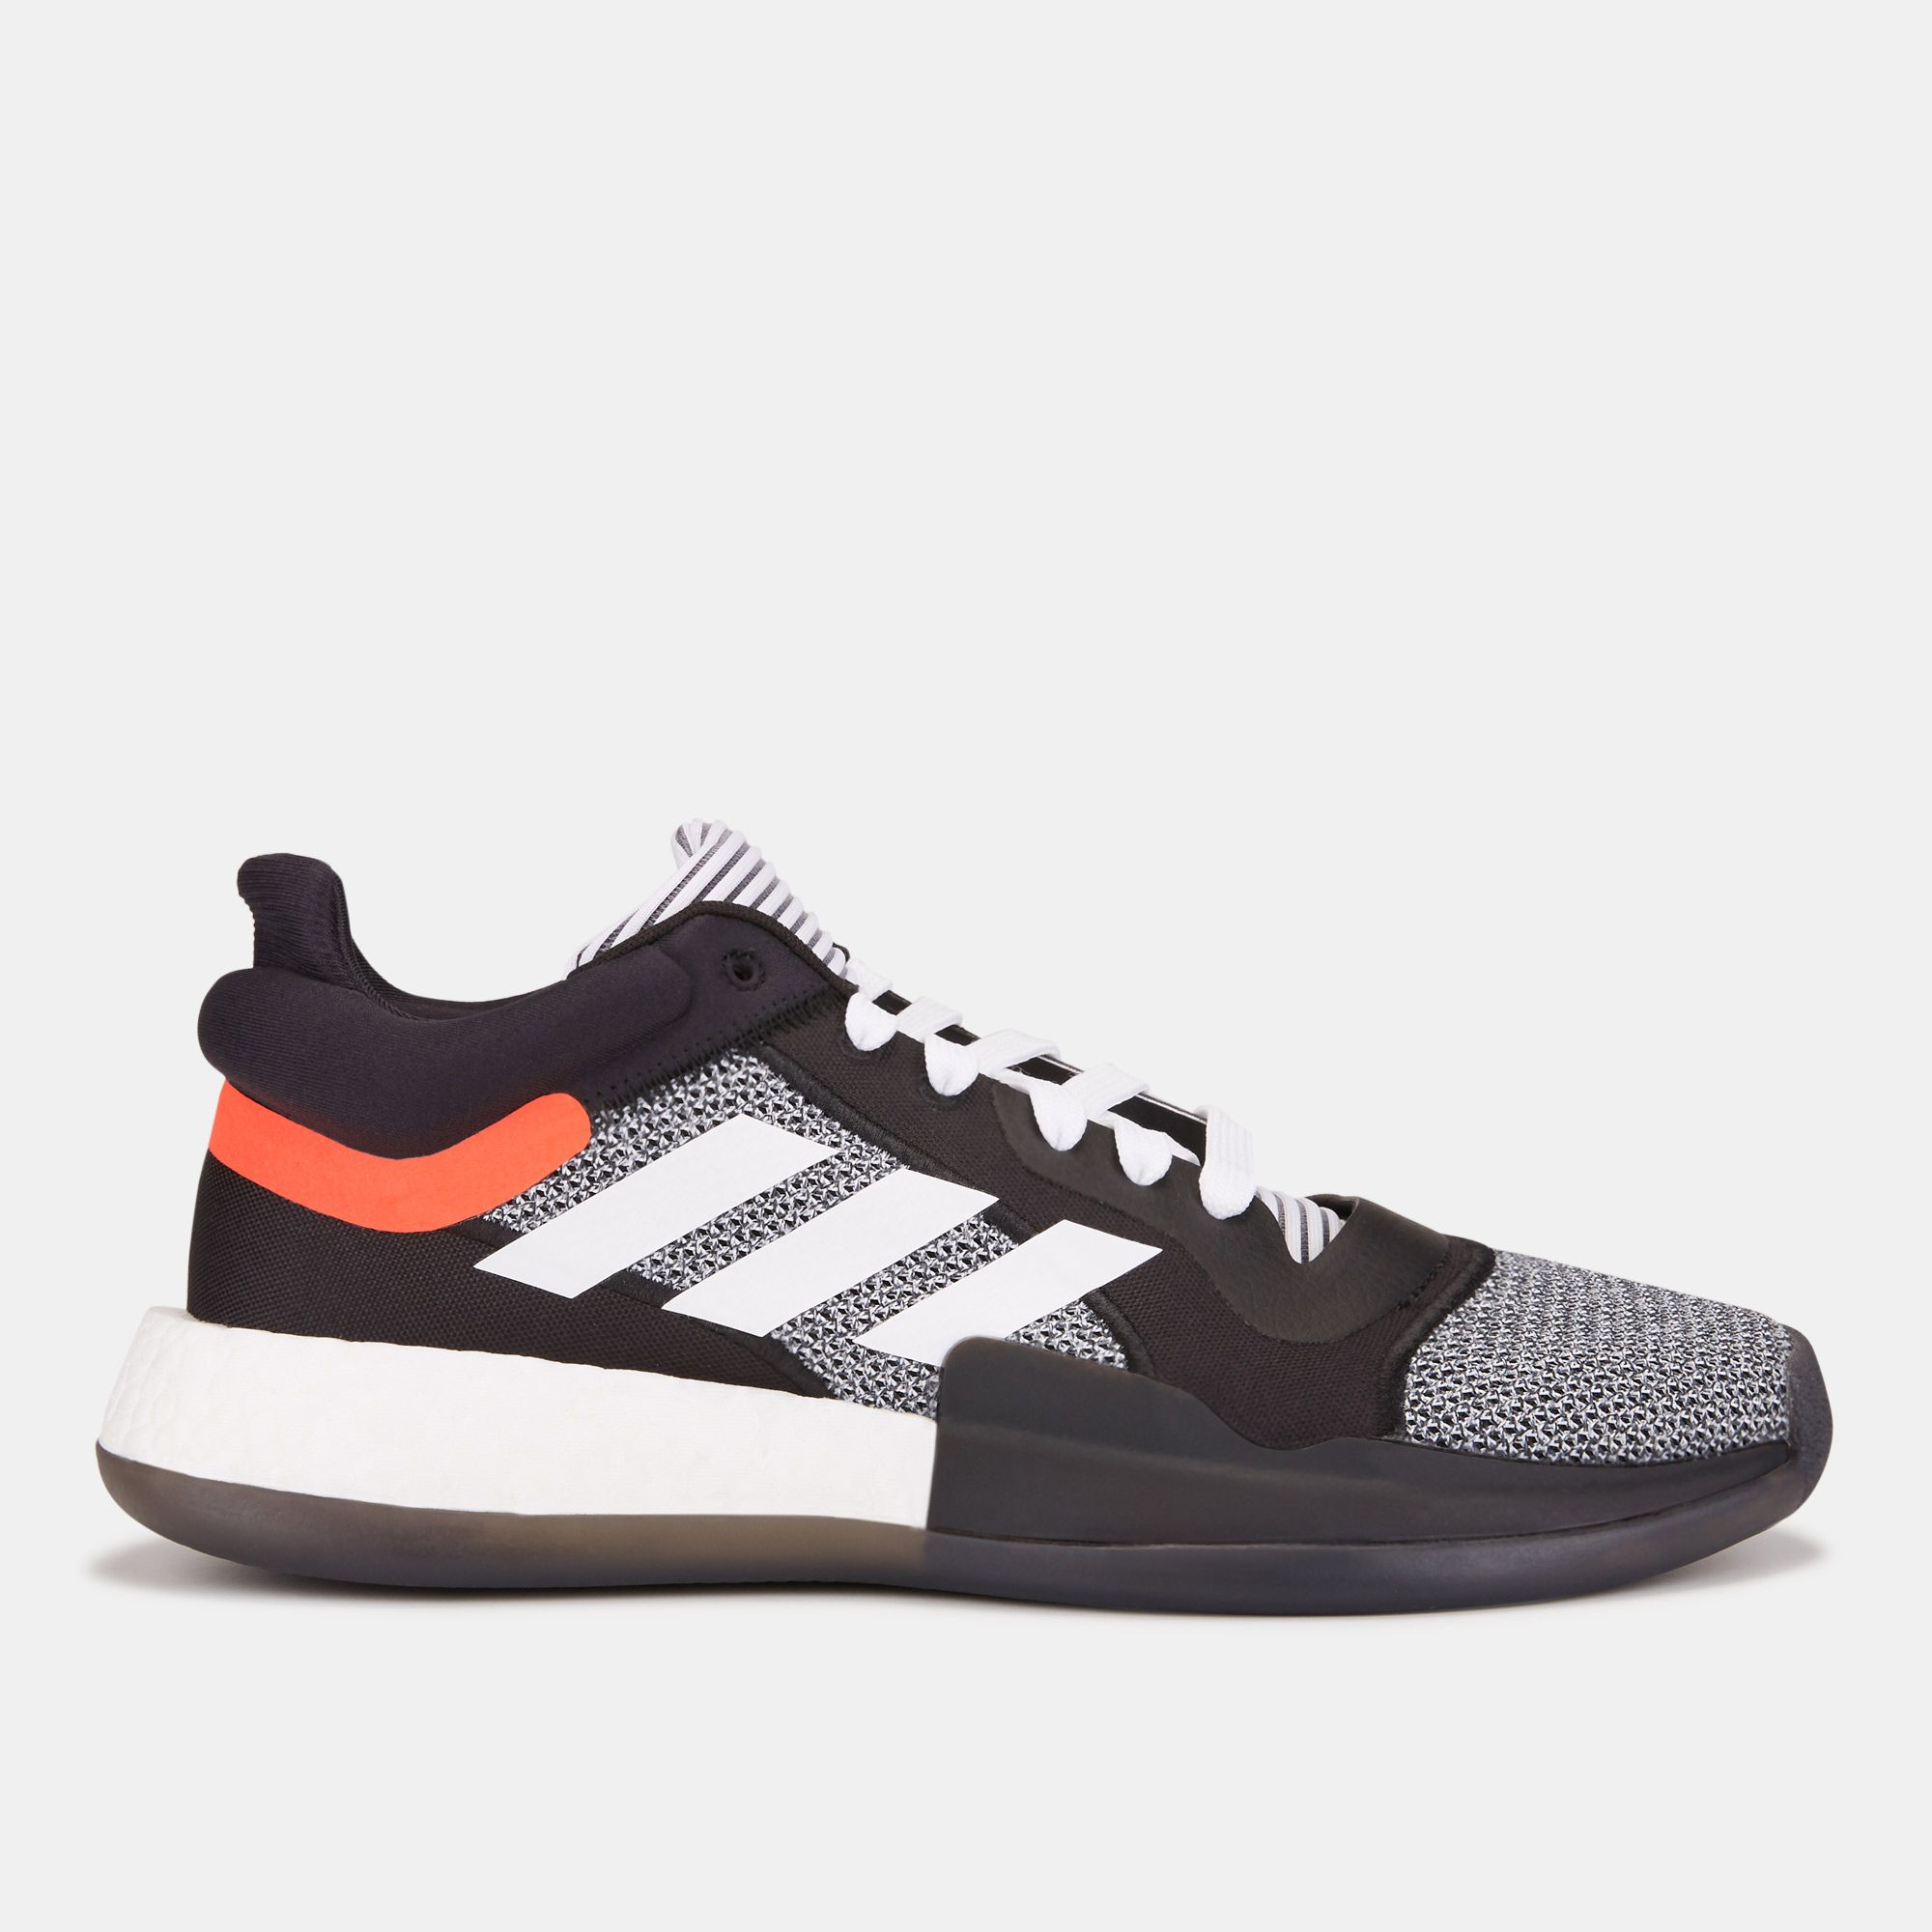 a661207519f232 adidas Men s Marquee Boost Low Basketball Shoe